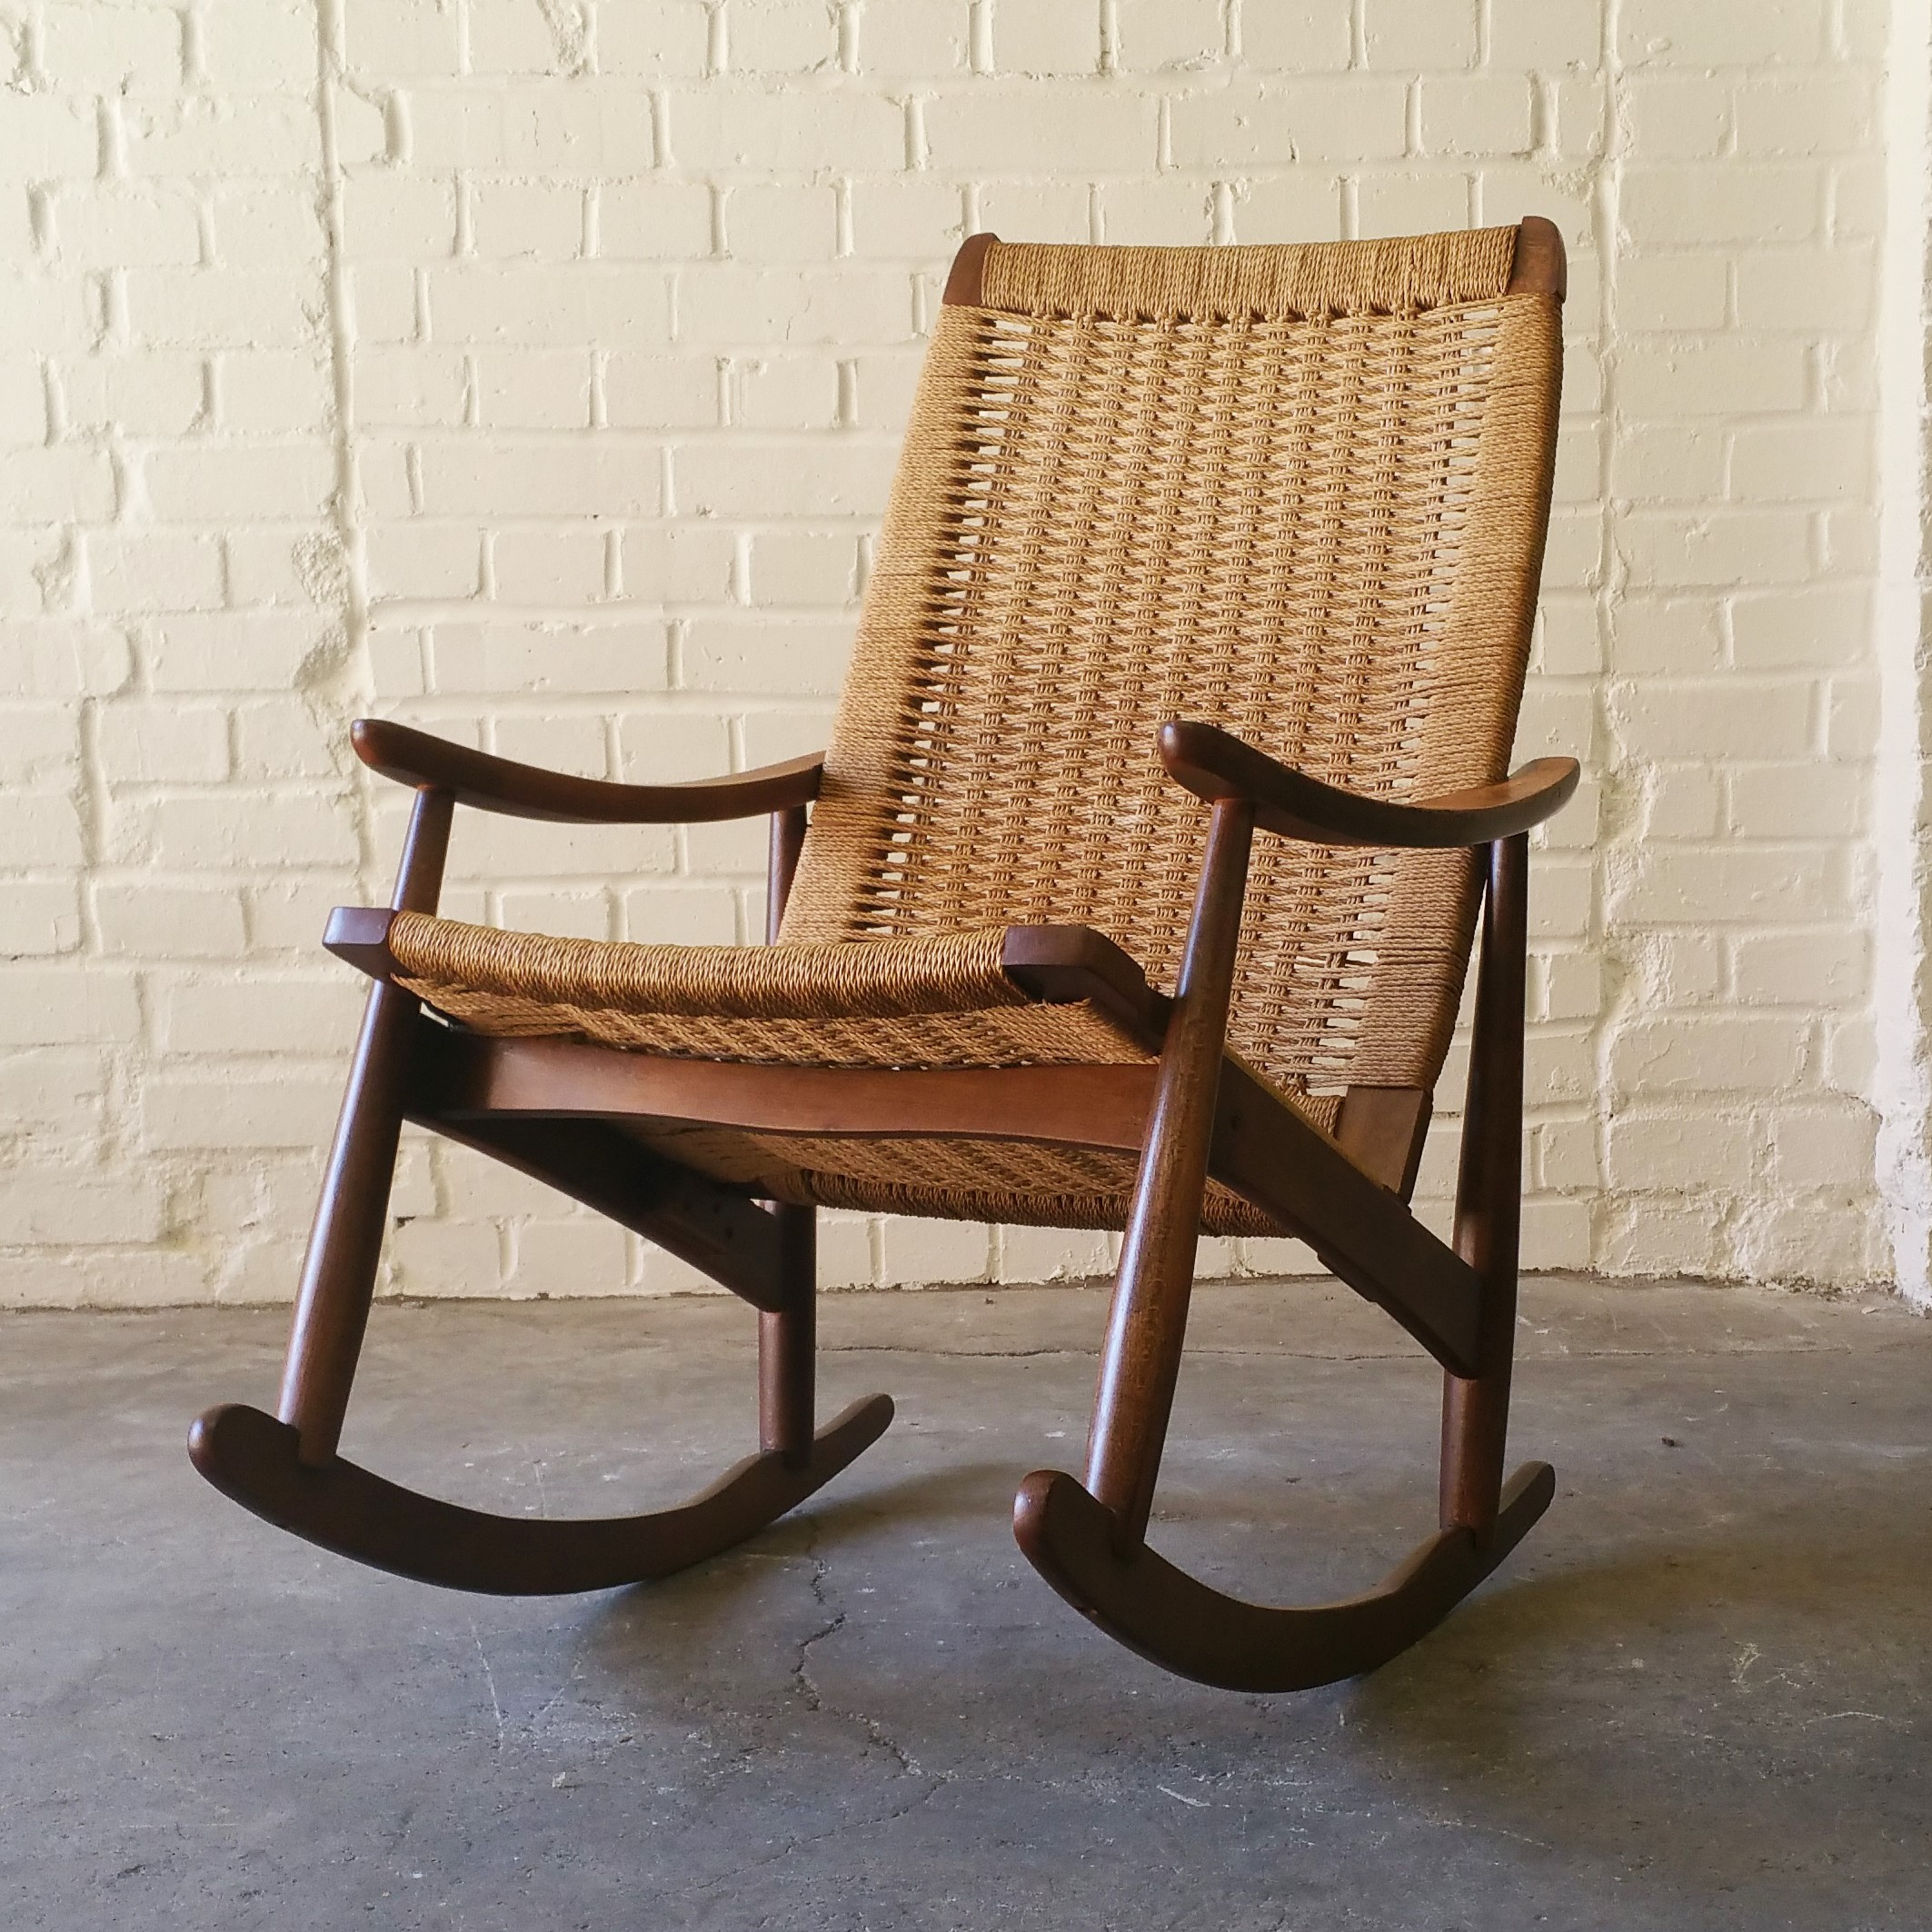 Astonishing It Rocks Vintage Hans J Wegner Style Rope Rocking Chair Ocoug Best Dining Table And Chair Ideas Images Ocougorg